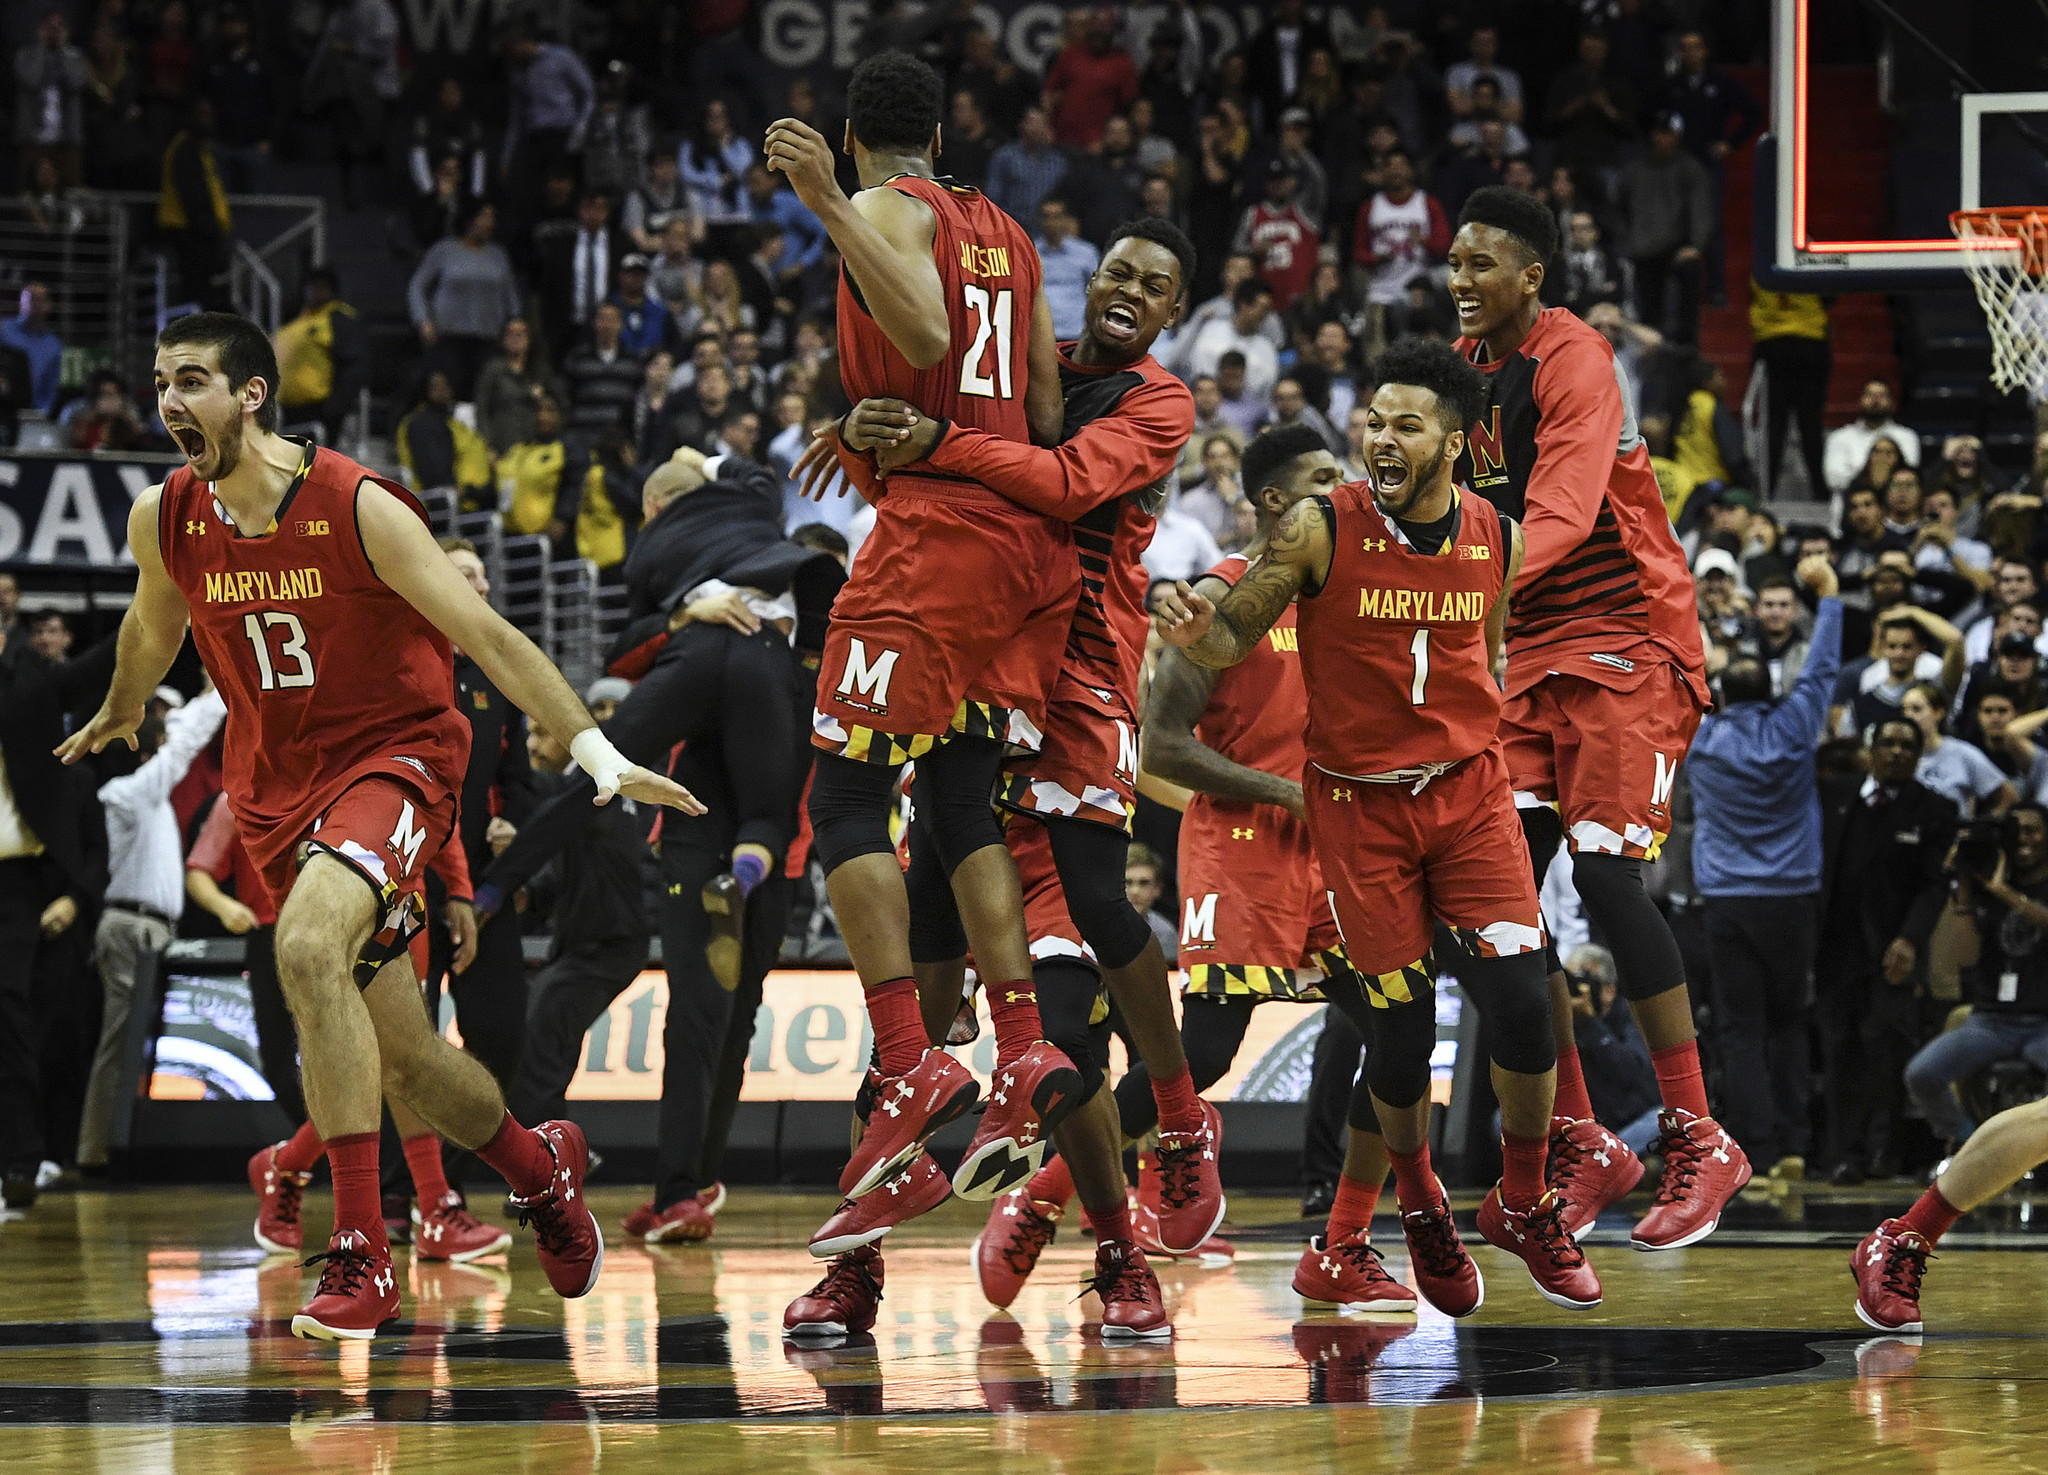 Will Maryland-Georgetown basketball series continue ...